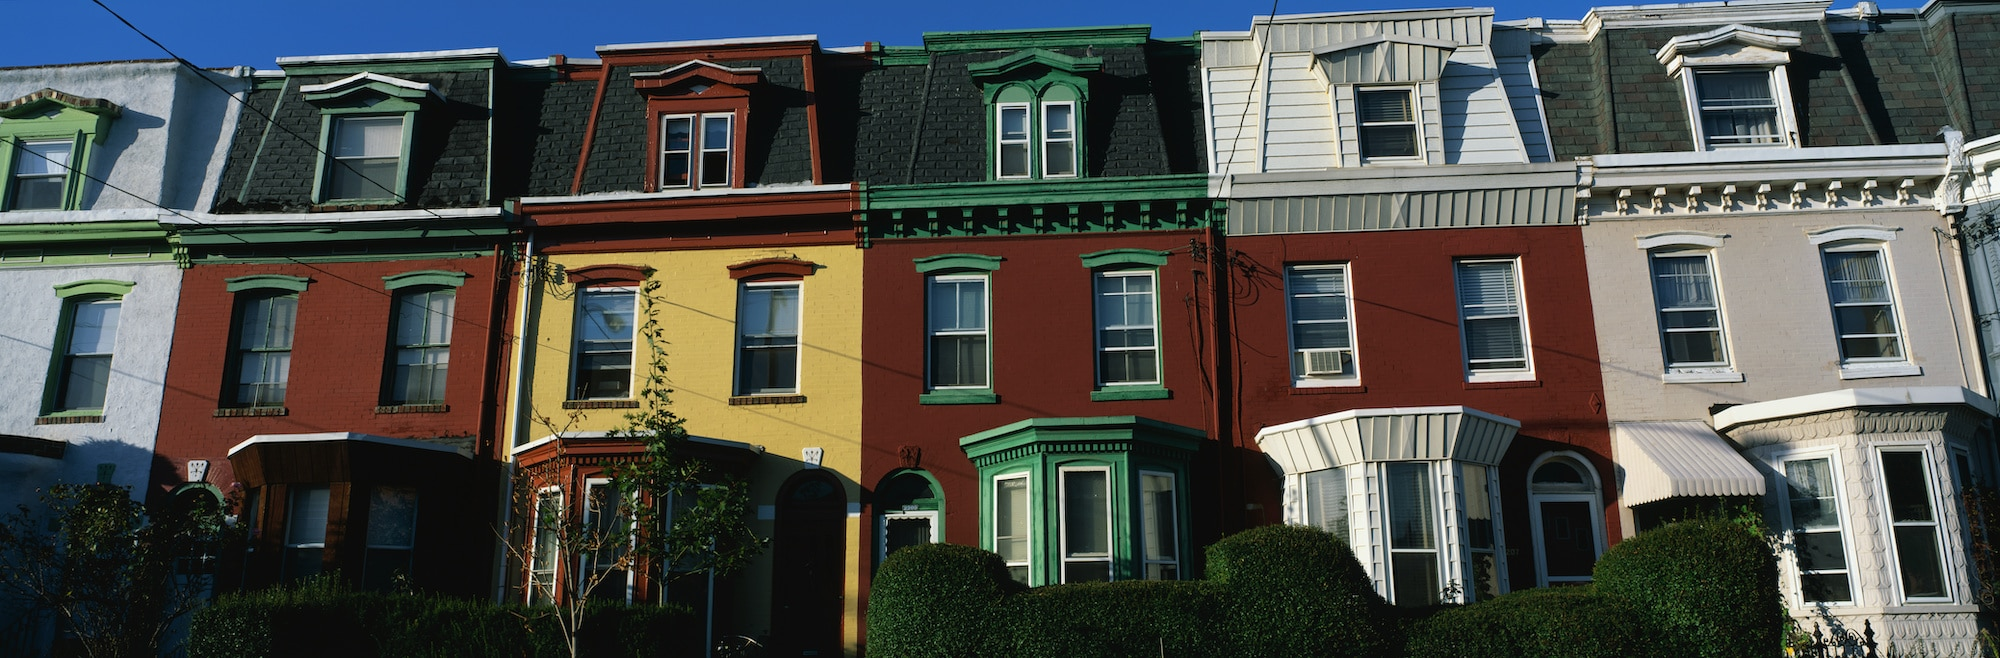 Real Estate Tax Foreclosure Proceedings in the Time of COVID